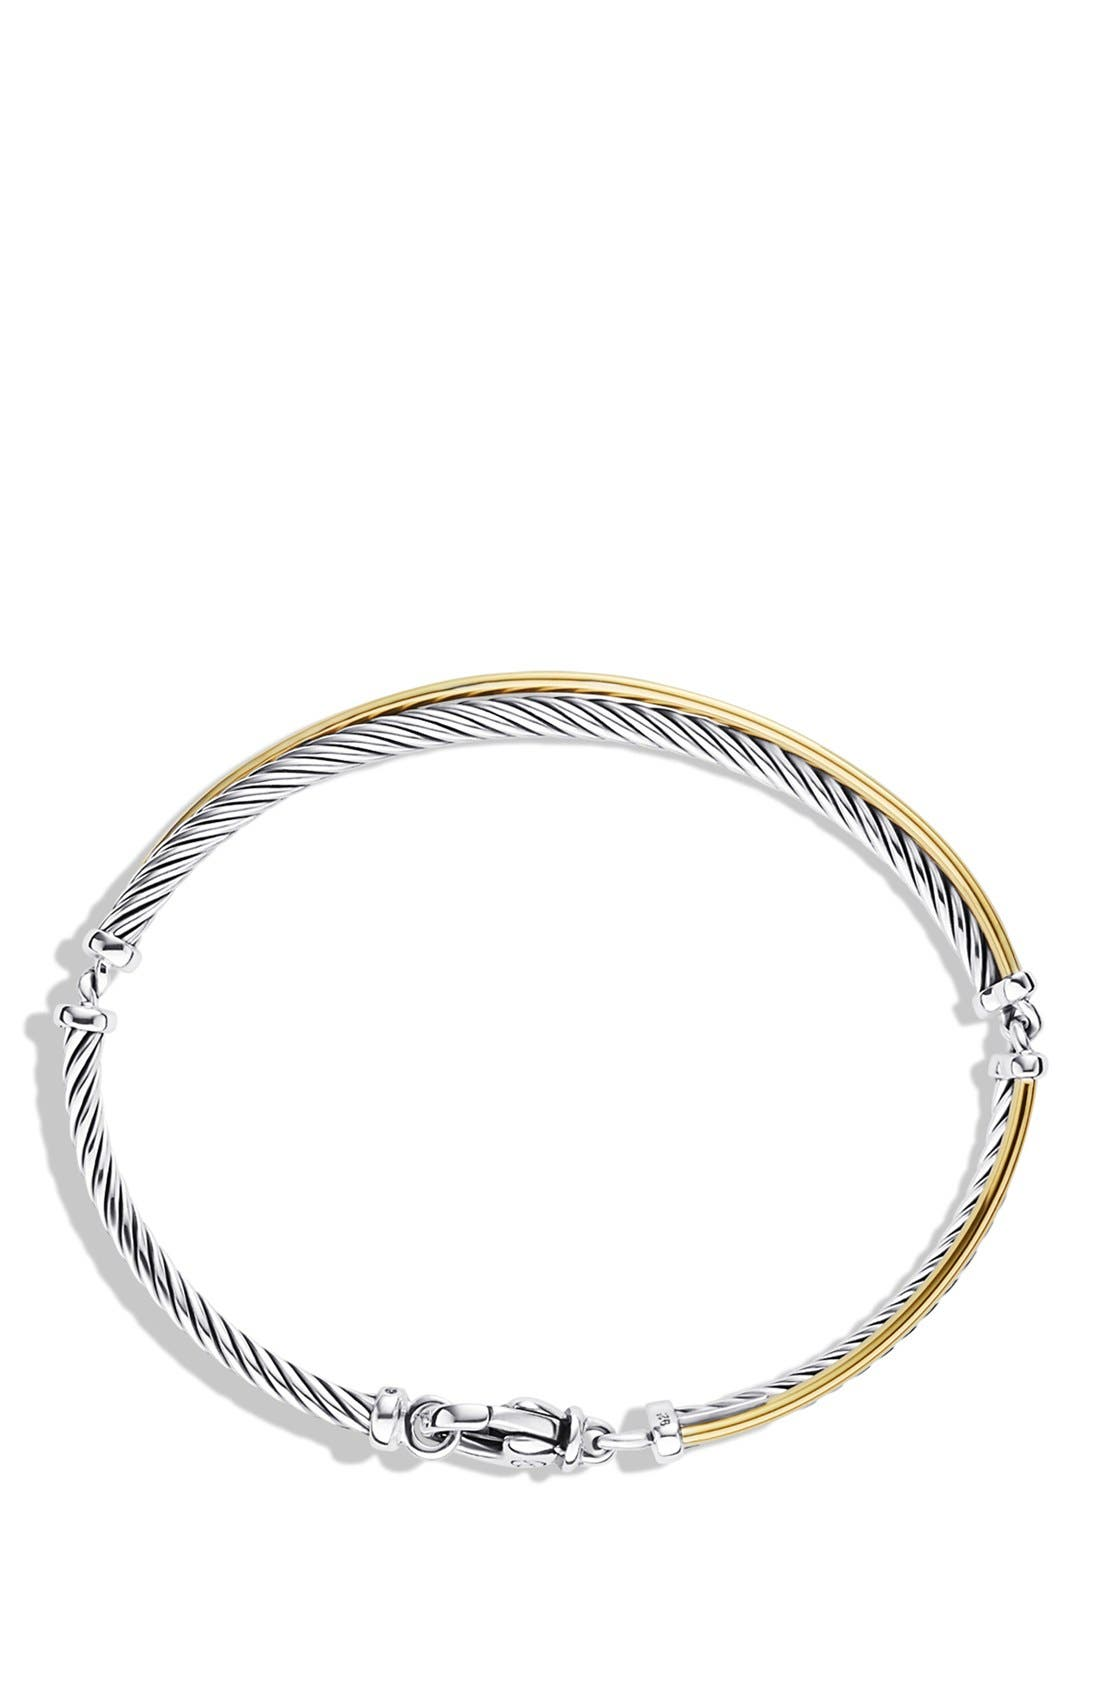 'Crossover' Bracelet with Gold,                             Alternate thumbnail 2, color,                             040